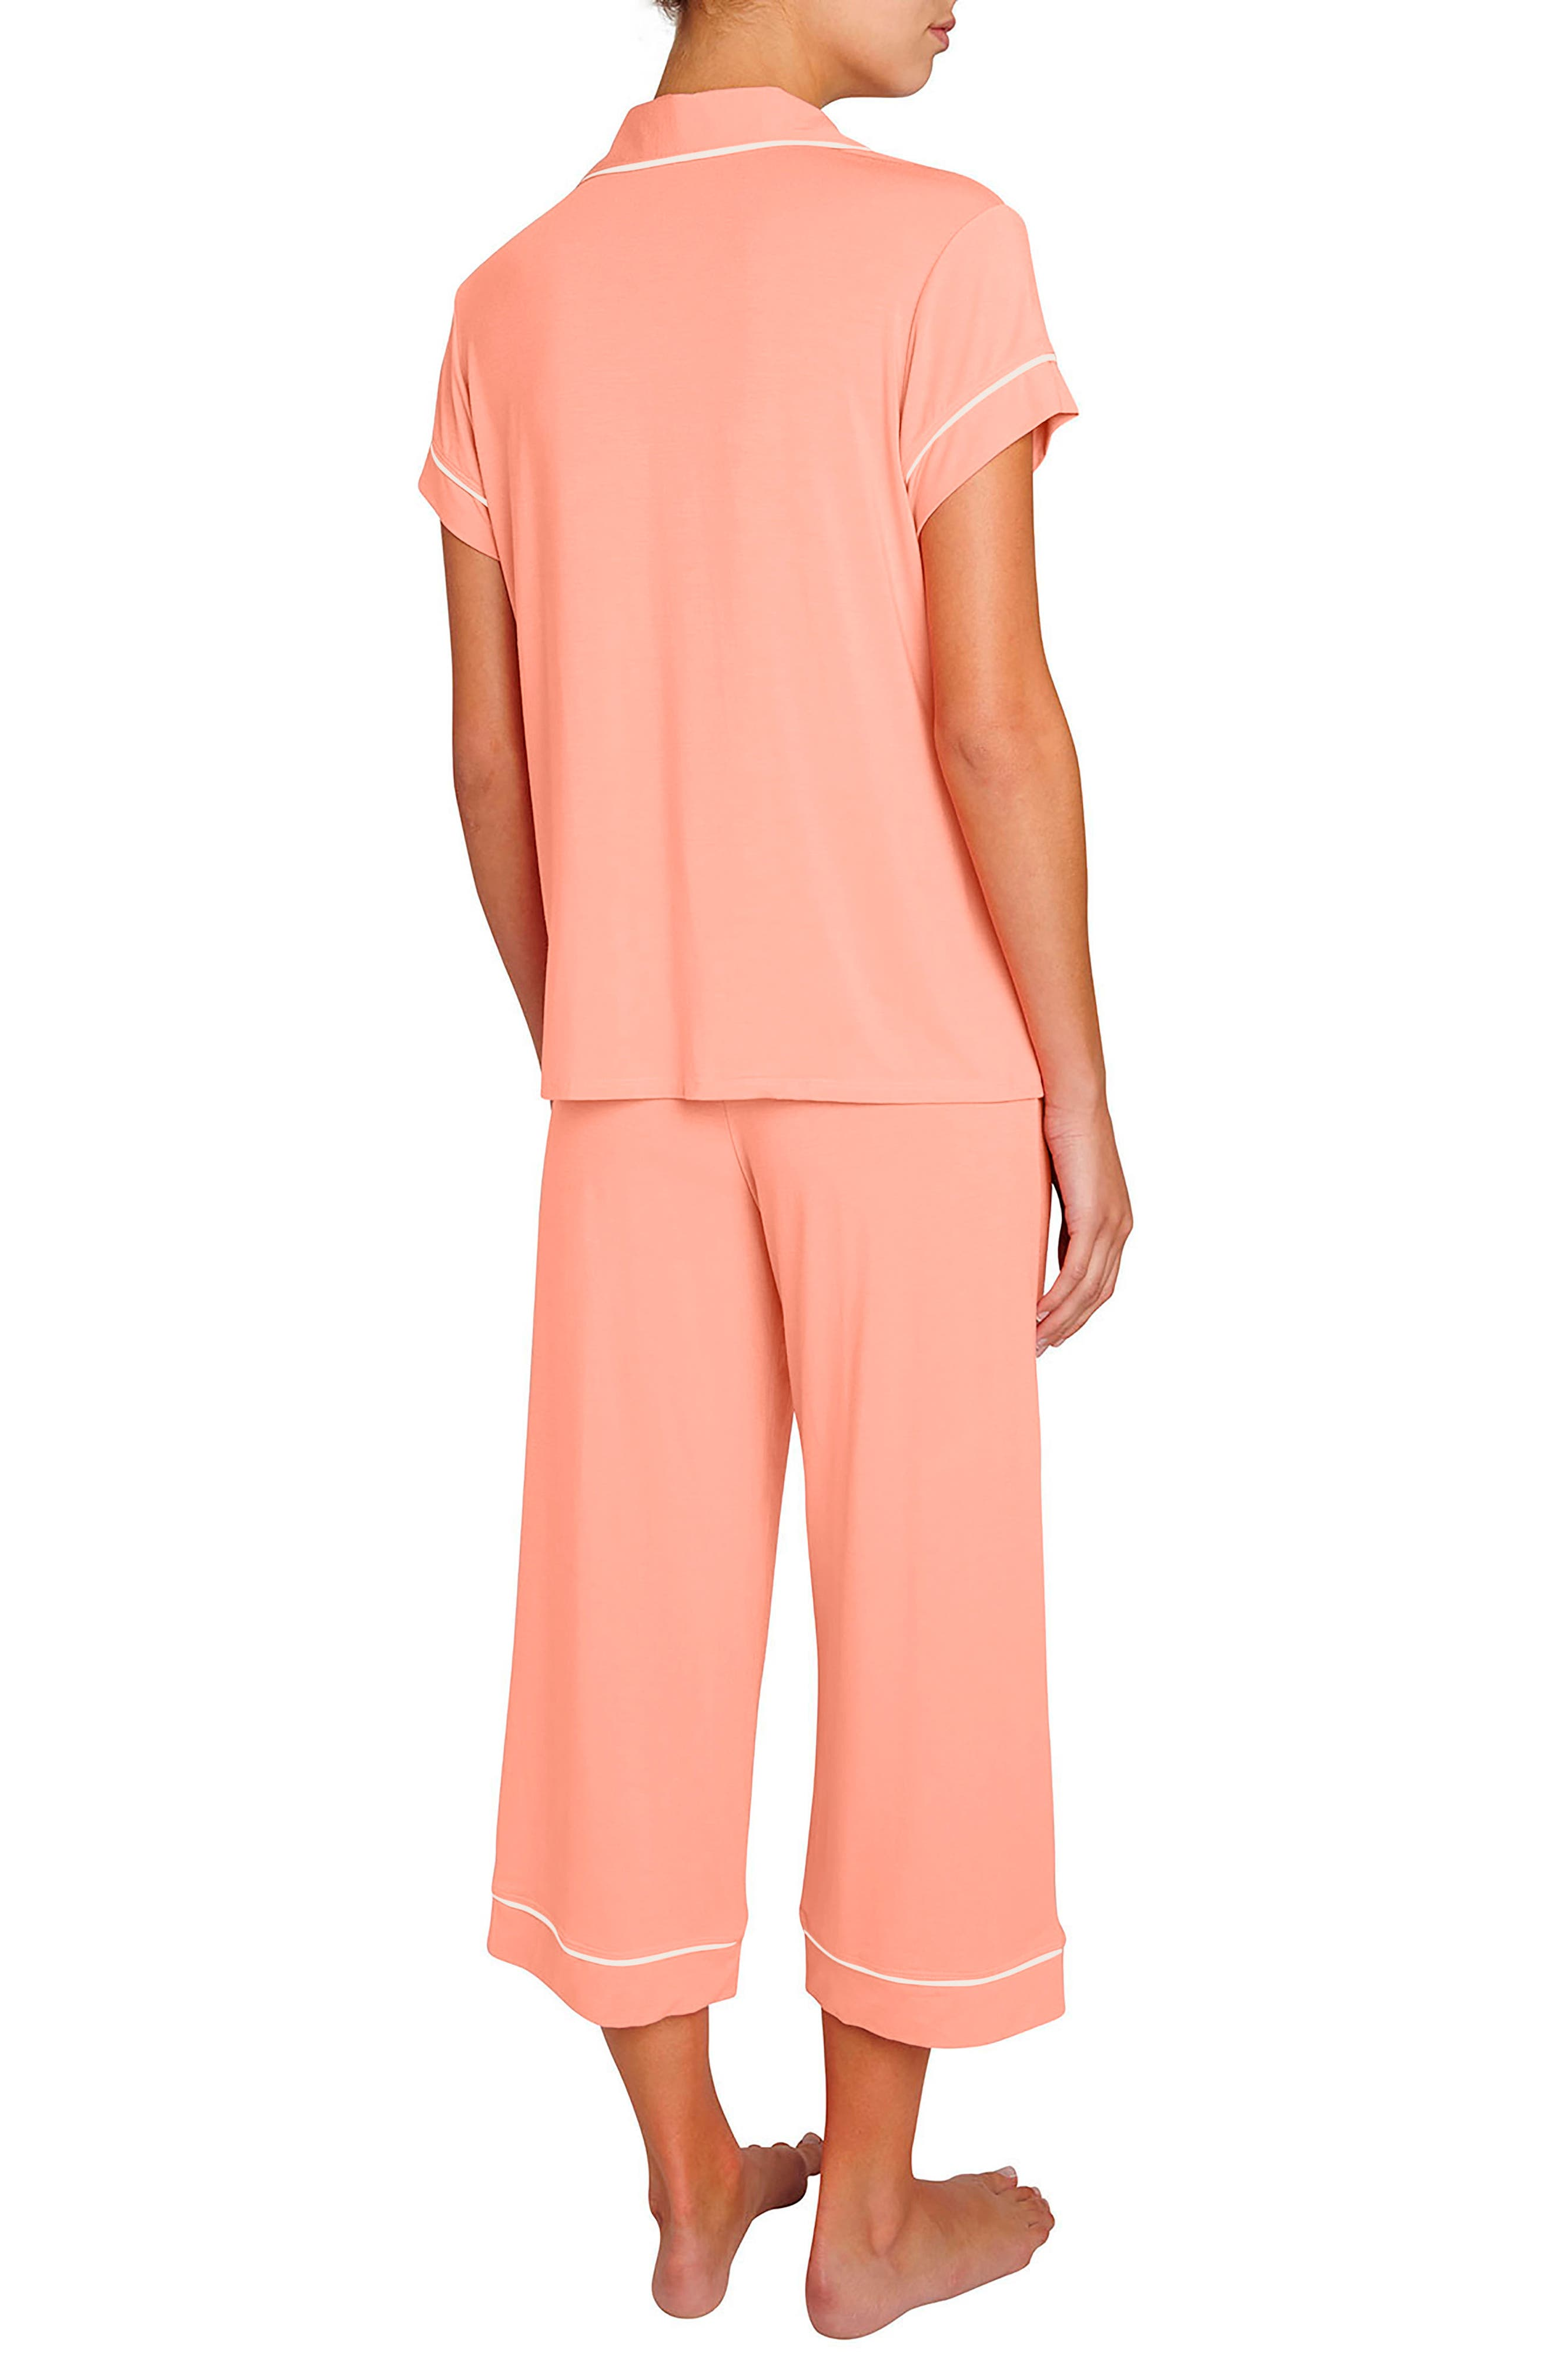 Gisele Crop Pajamas,                             Alternate thumbnail 2, color,                             Candlelight Peach/ Ivory